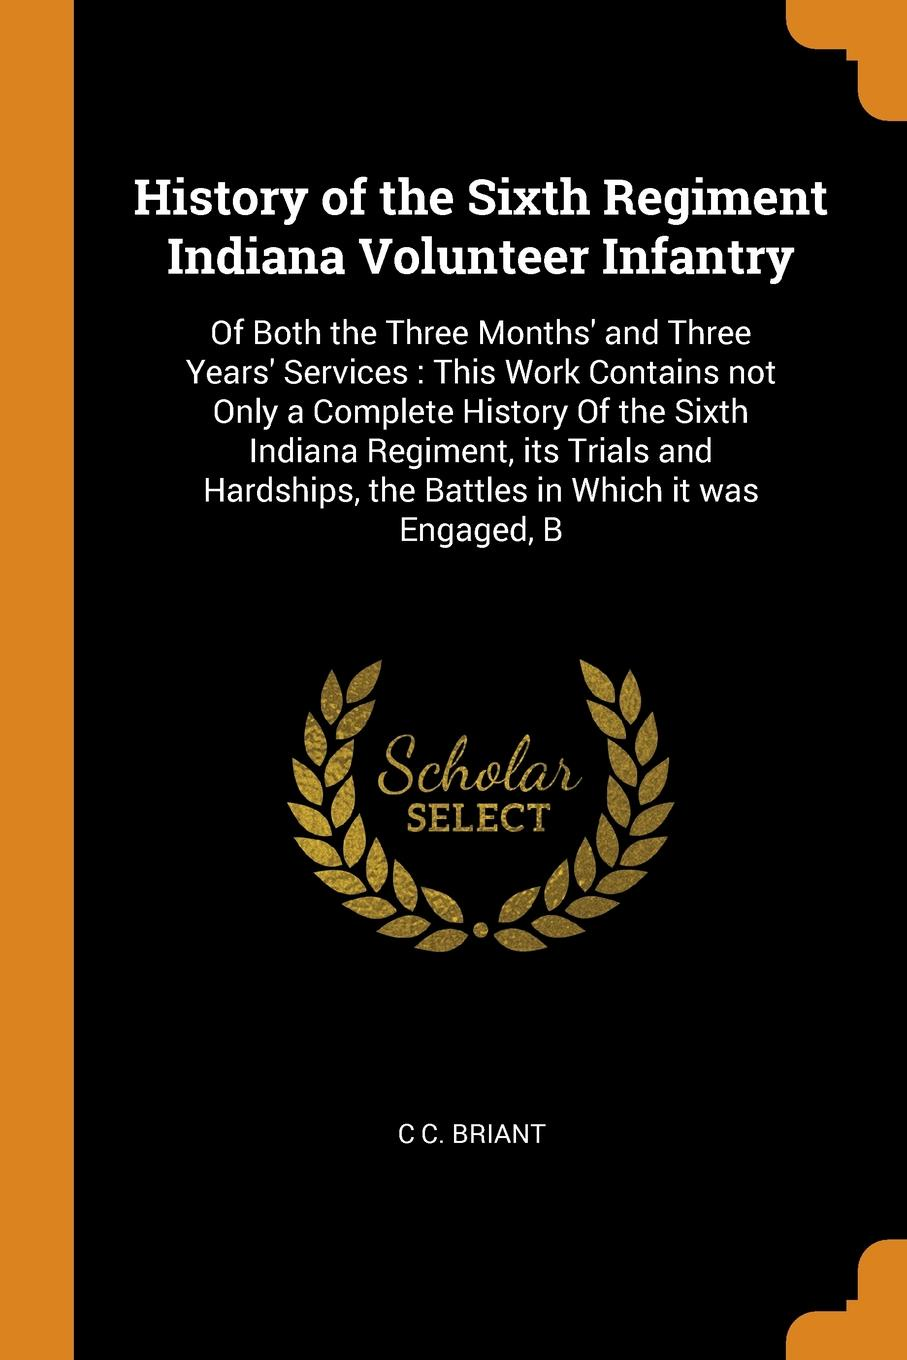 C C. Briant History of the Sixth Regiment Indiana Volunteer Infantry. Of Both the Three Months' and Three Years' Services : This Work Contains not Only a Complete History Of the Sixth Indiana Regiment, its Trials and Hardships, the Battles in Which it was Eng... indiana dept of public instruction some results of eight years of vocatinal training in indiana